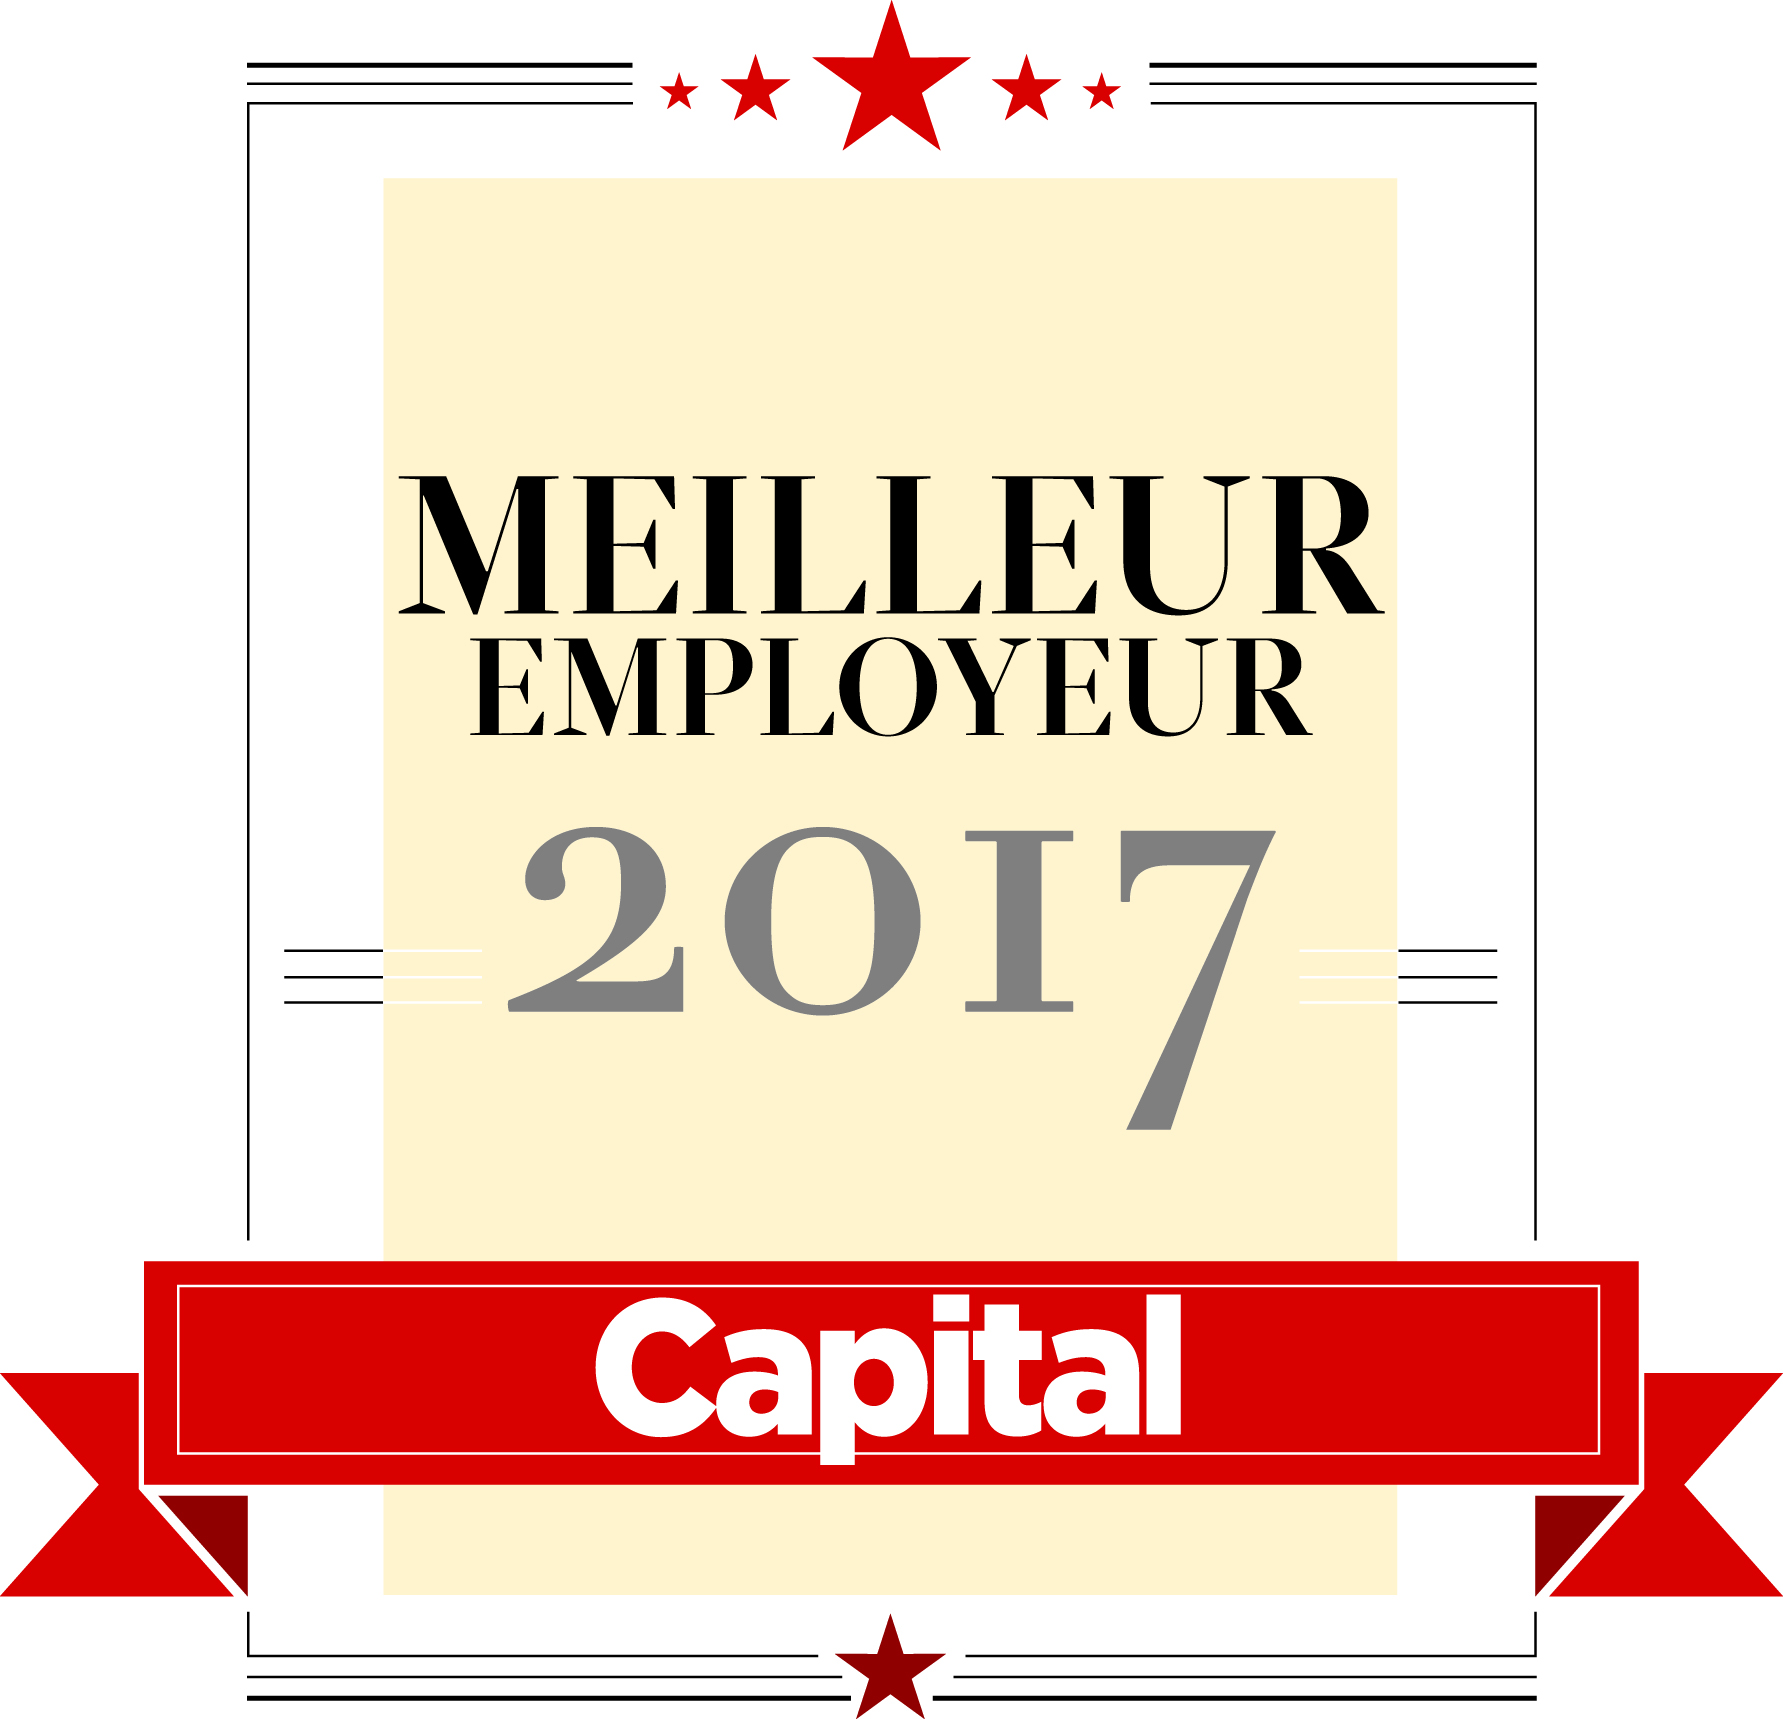 actu capital meilleurs employeurs 2017 vilogia. Black Bedroom Furniture Sets. Home Design Ideas